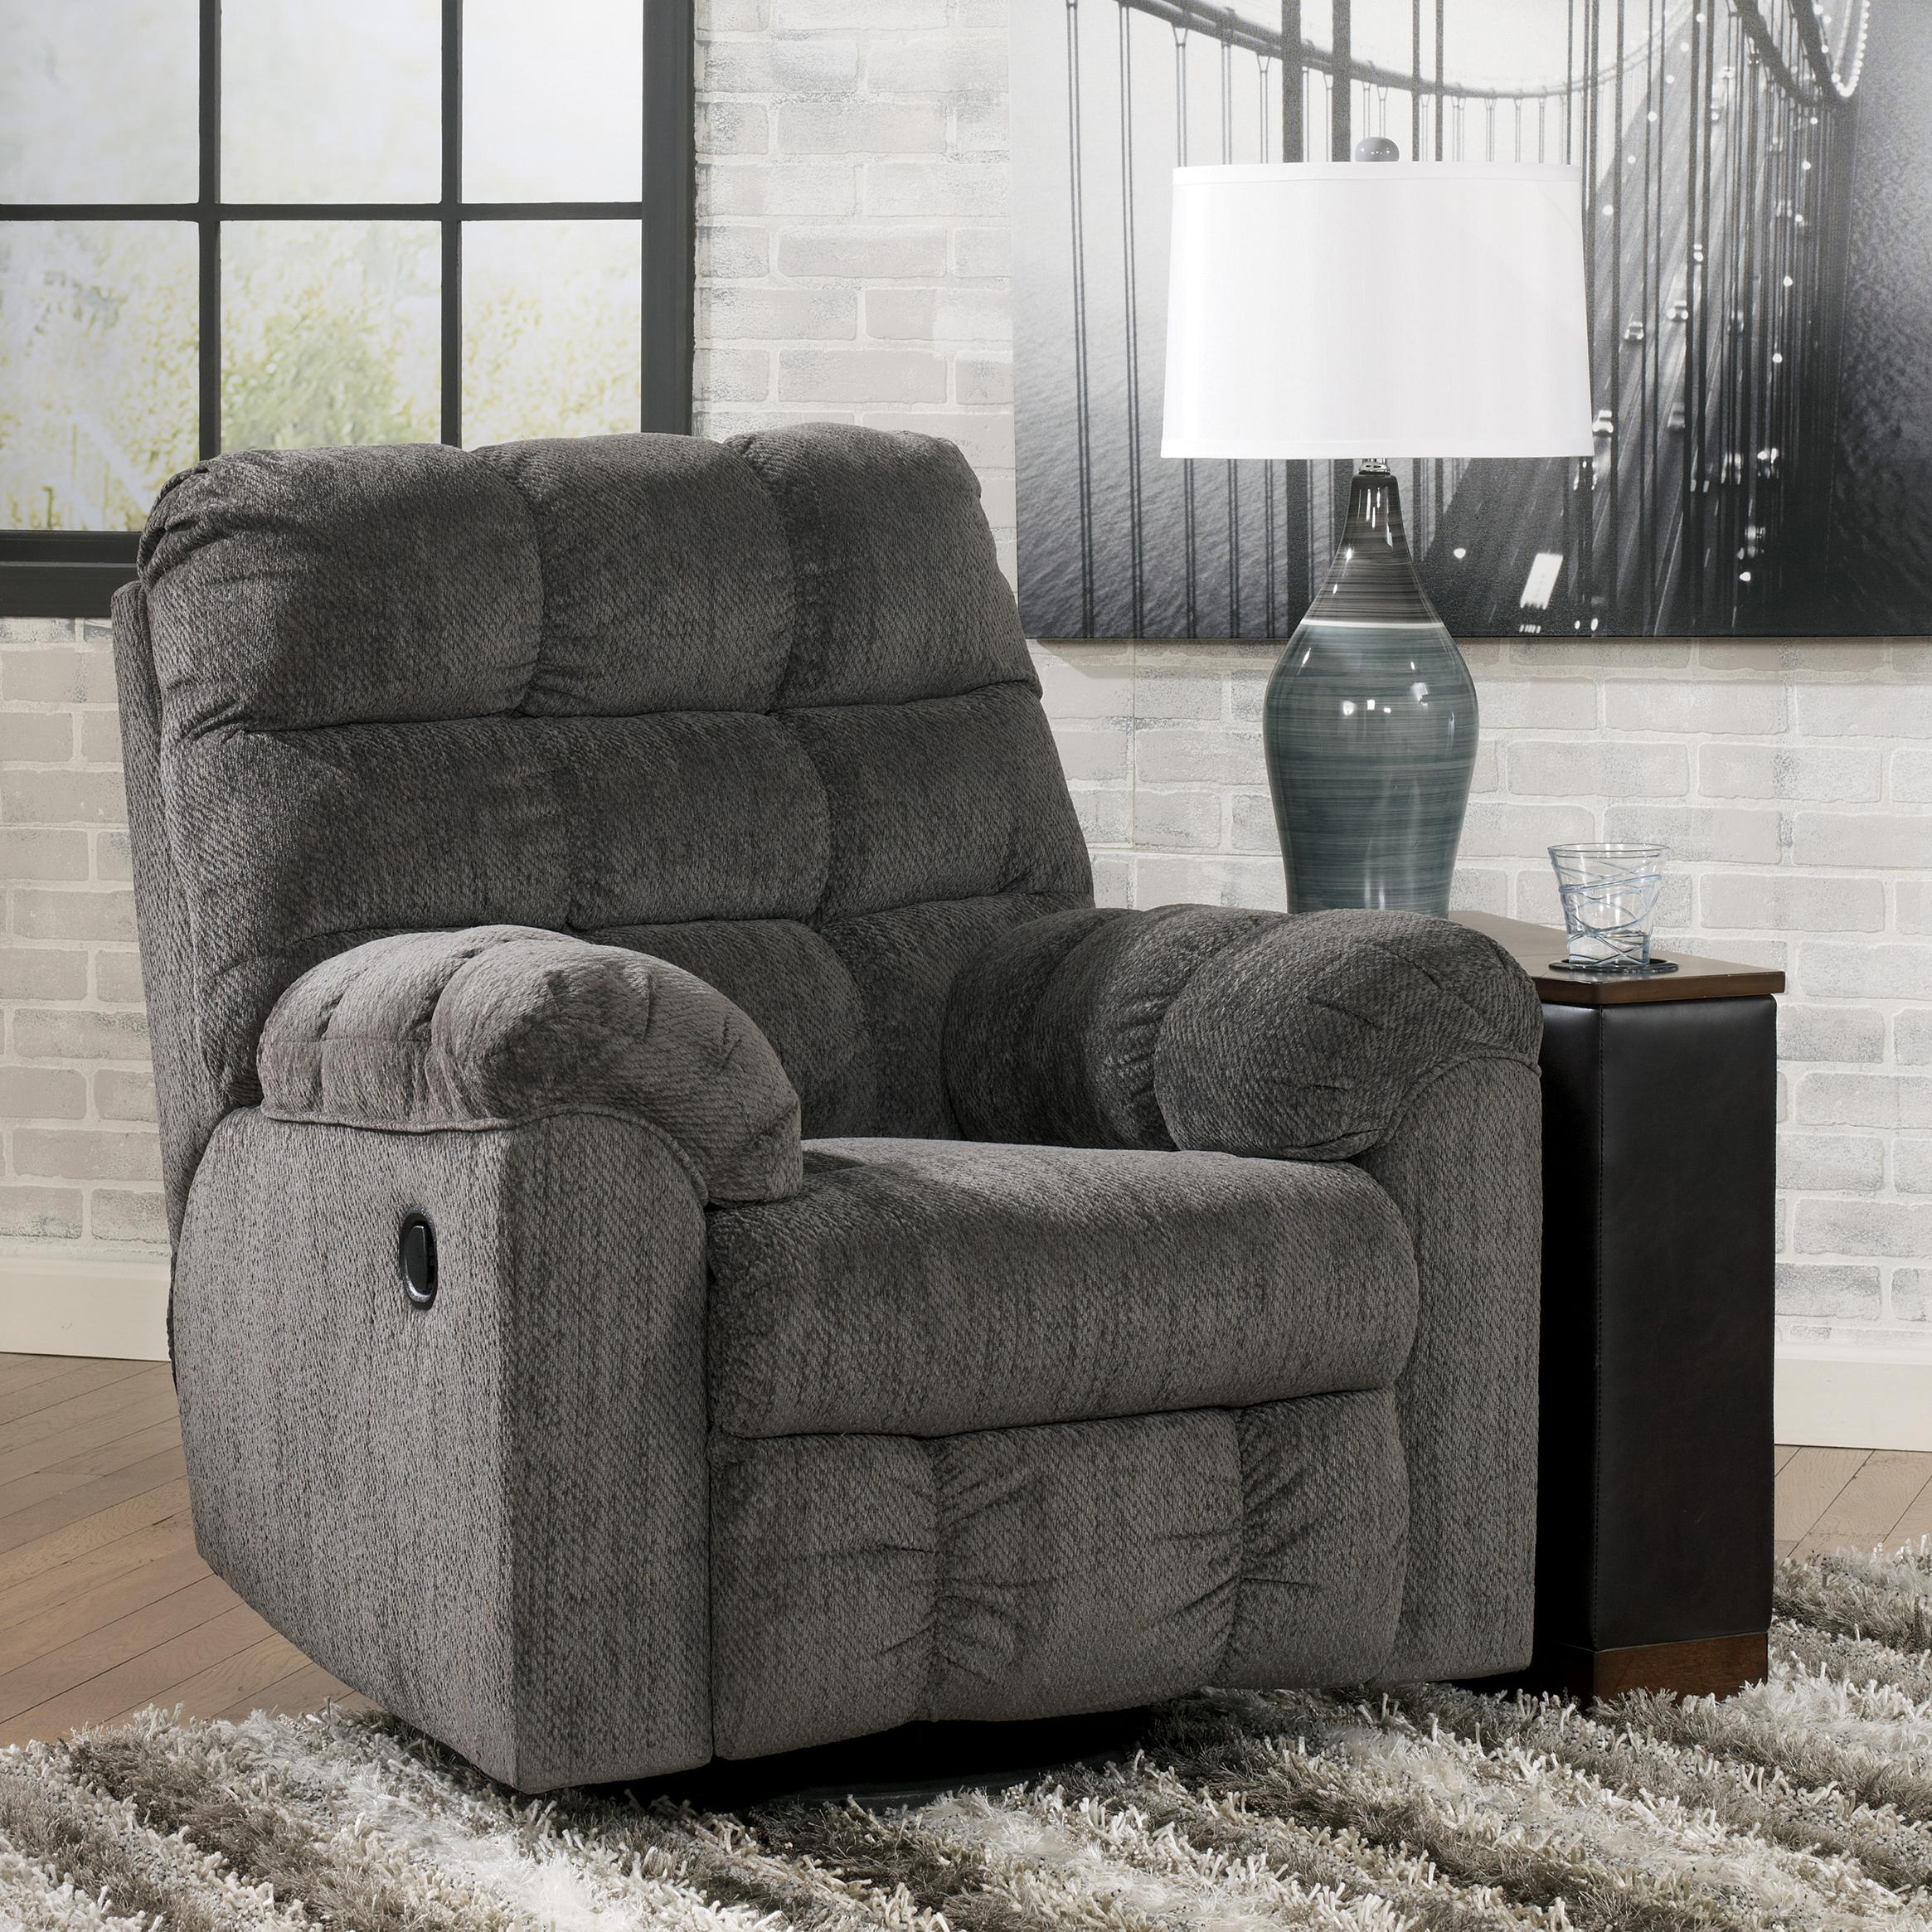 Ashley (Signature Design) Acieona - Slate Swivel Rocker Recliner - Item Number: 5830028